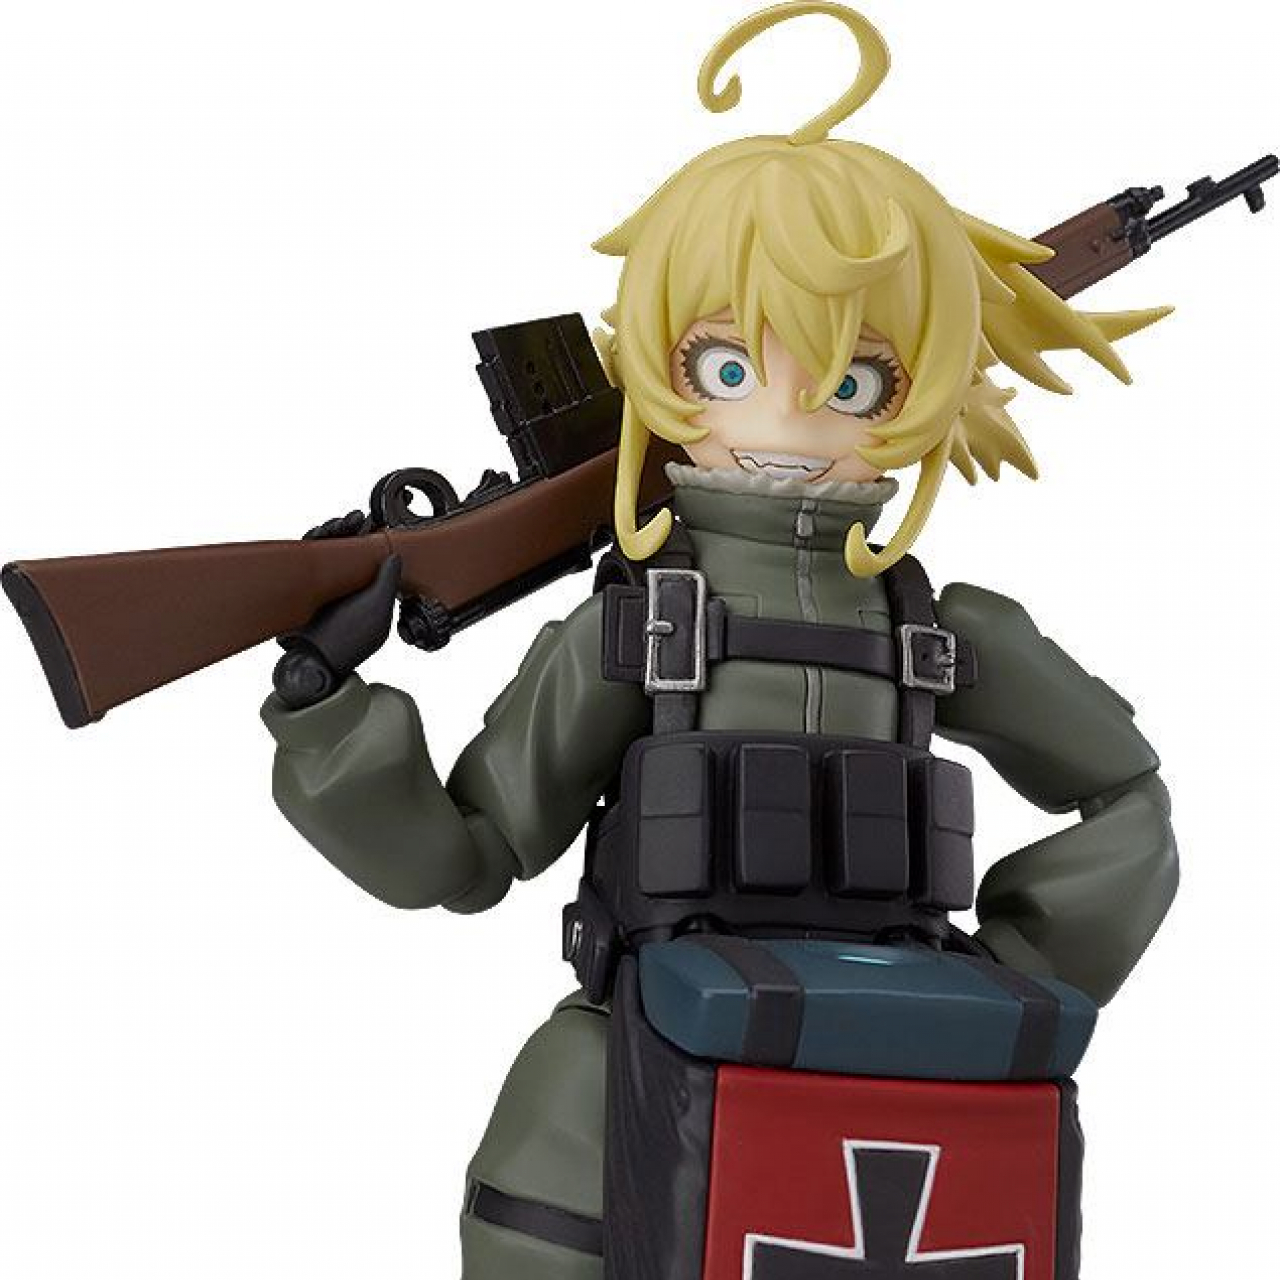 Saga of Tanya the Evil - The Movie Figma Action Figure Tanya Degurechaff 13 cm